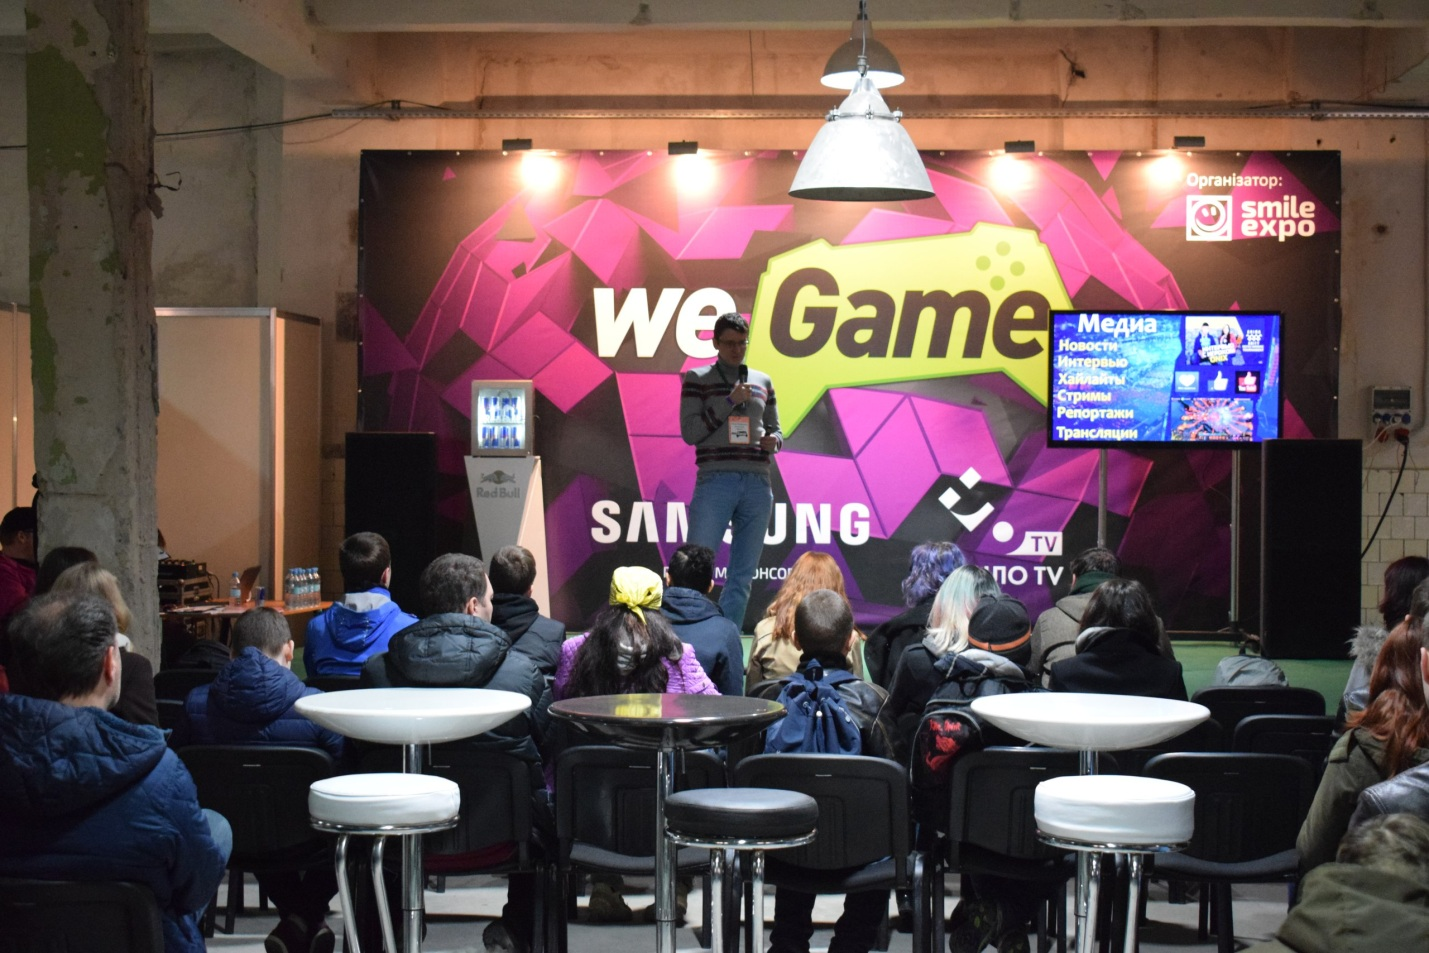 How does one organize an eSports tournament? Presentation from Pavlo Kovalenko at WEGAME 3.0